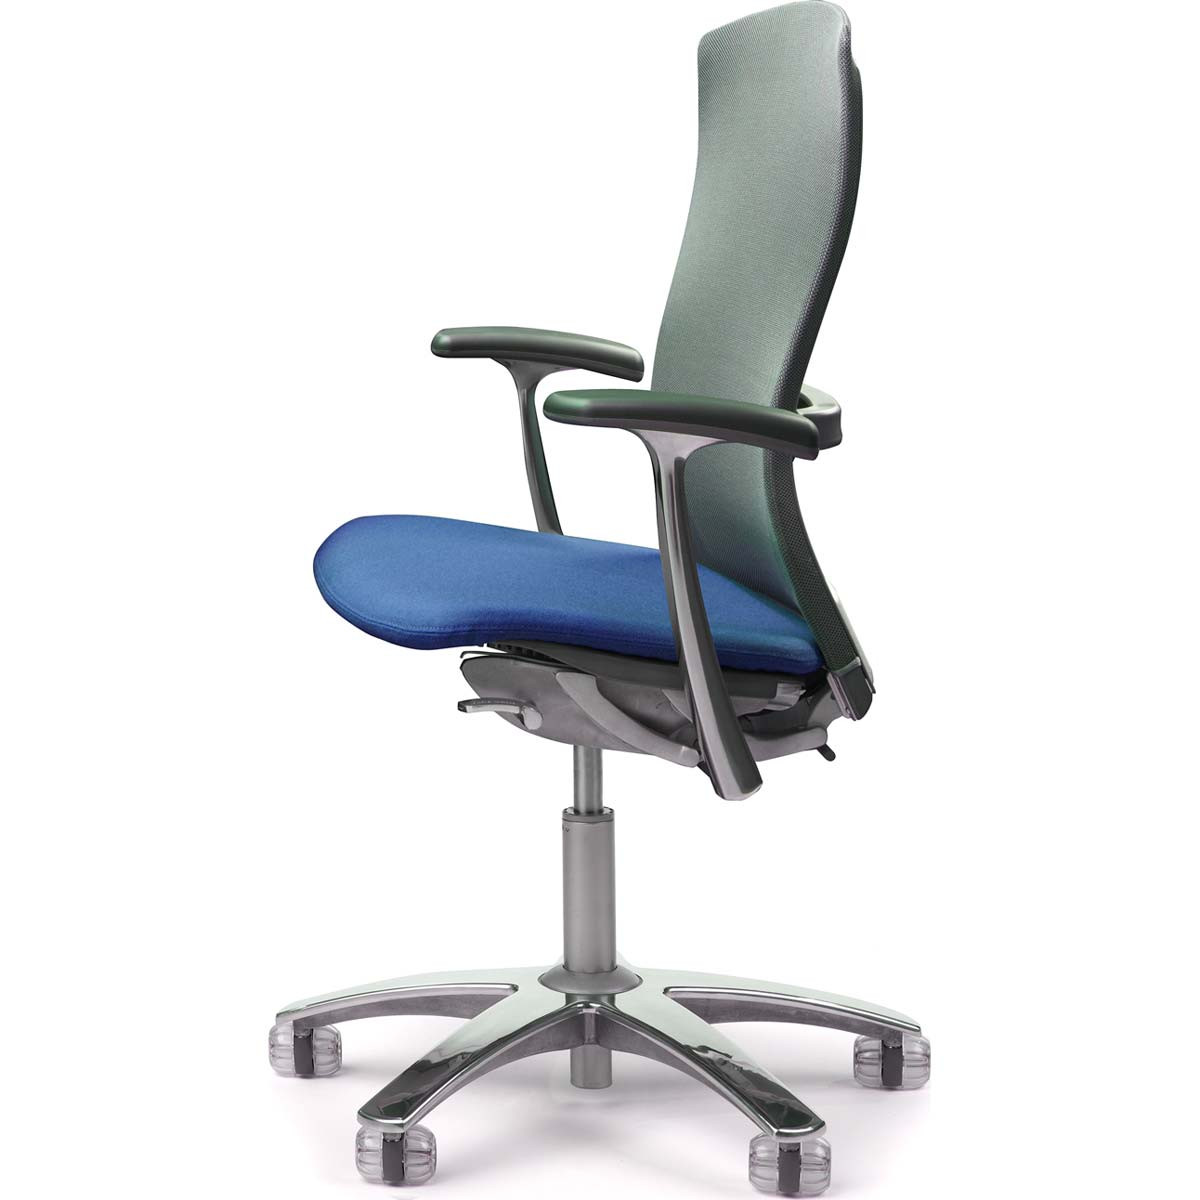 knoll chadwick chair parts rentals in brooklyn the life shop ergonomic chairs loading zoom